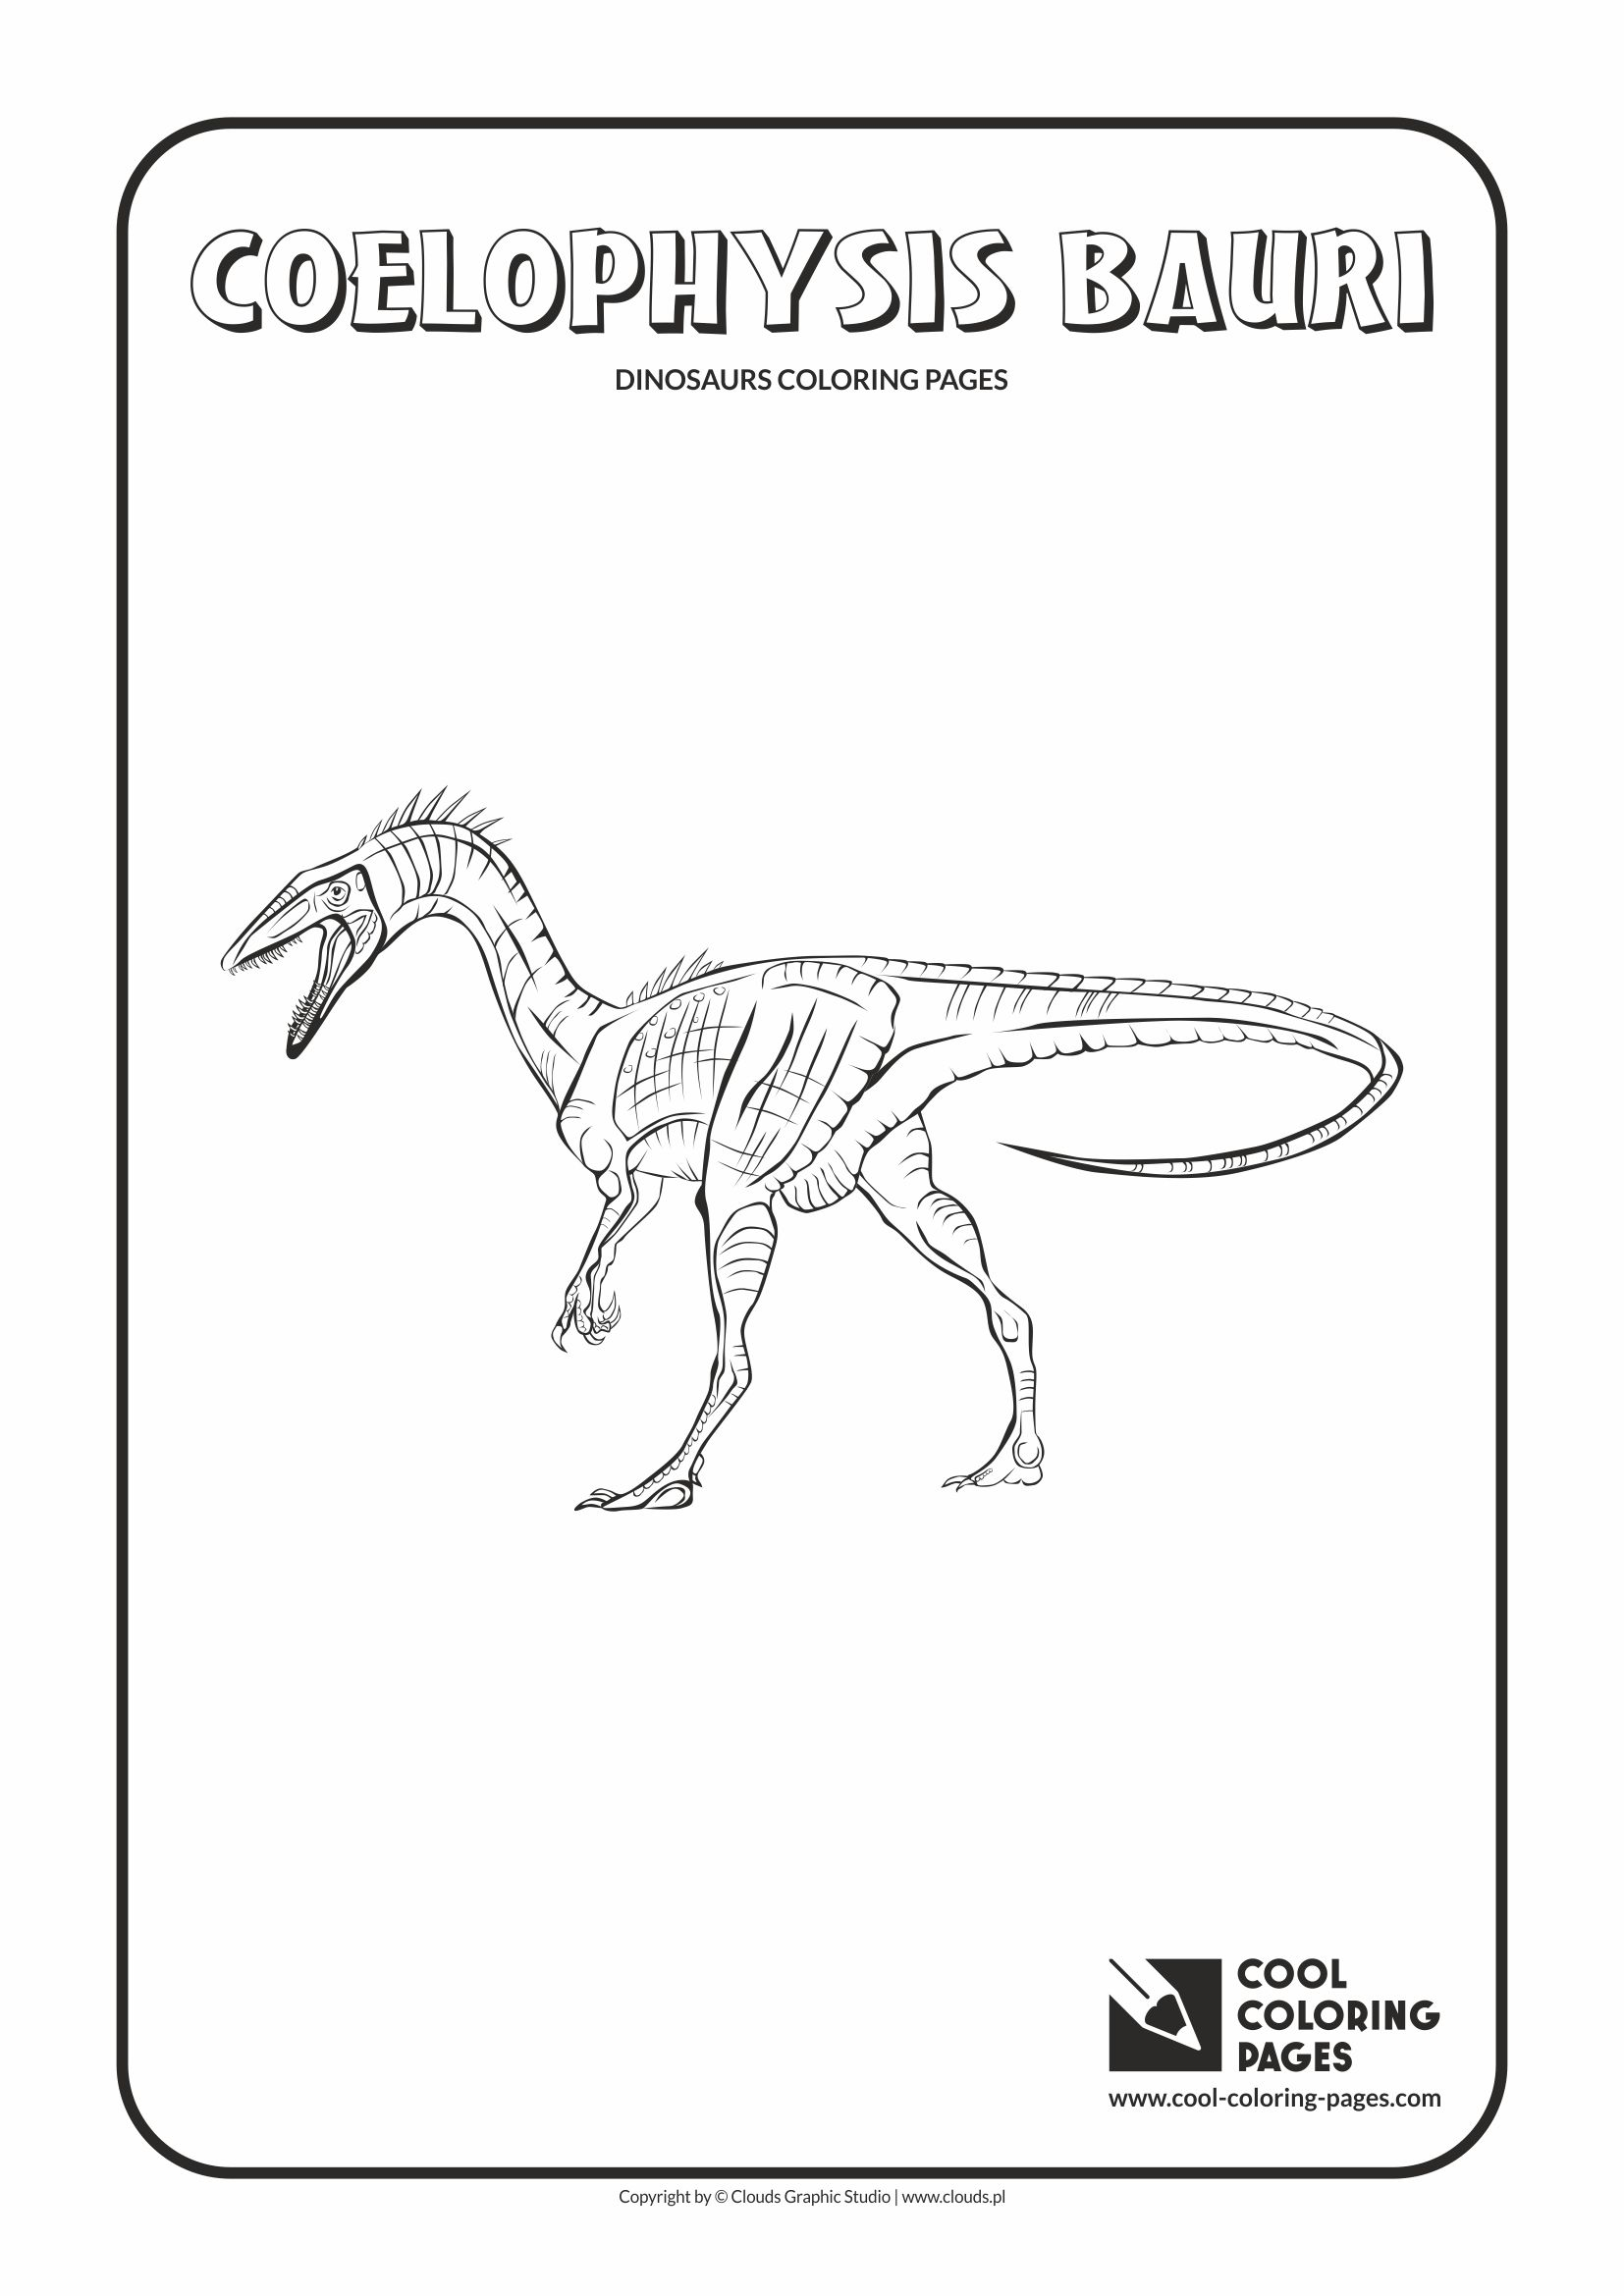 Cool Coloring Pages - Animals / Coelophysis bauri / Coloring page with Coelophysis bauri